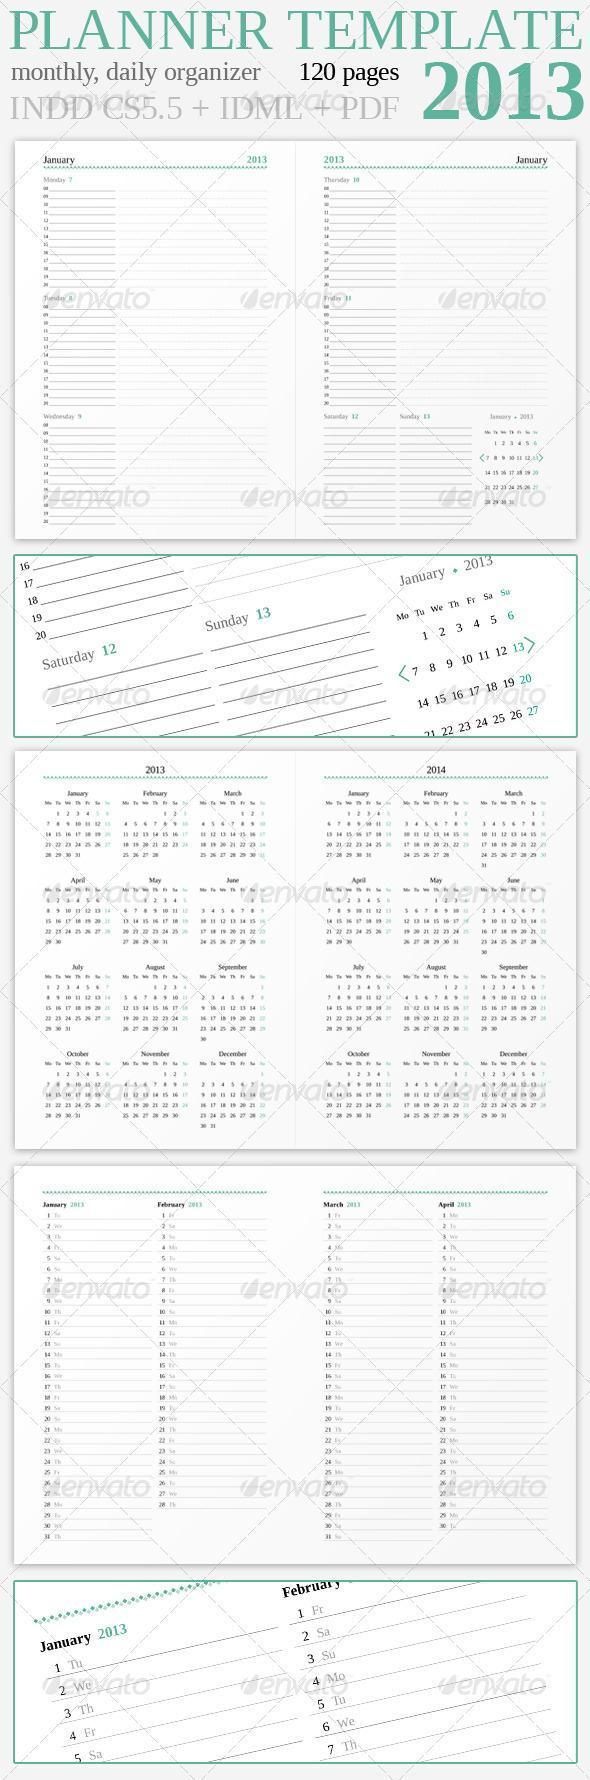 Planner and Calendar for Year 2013